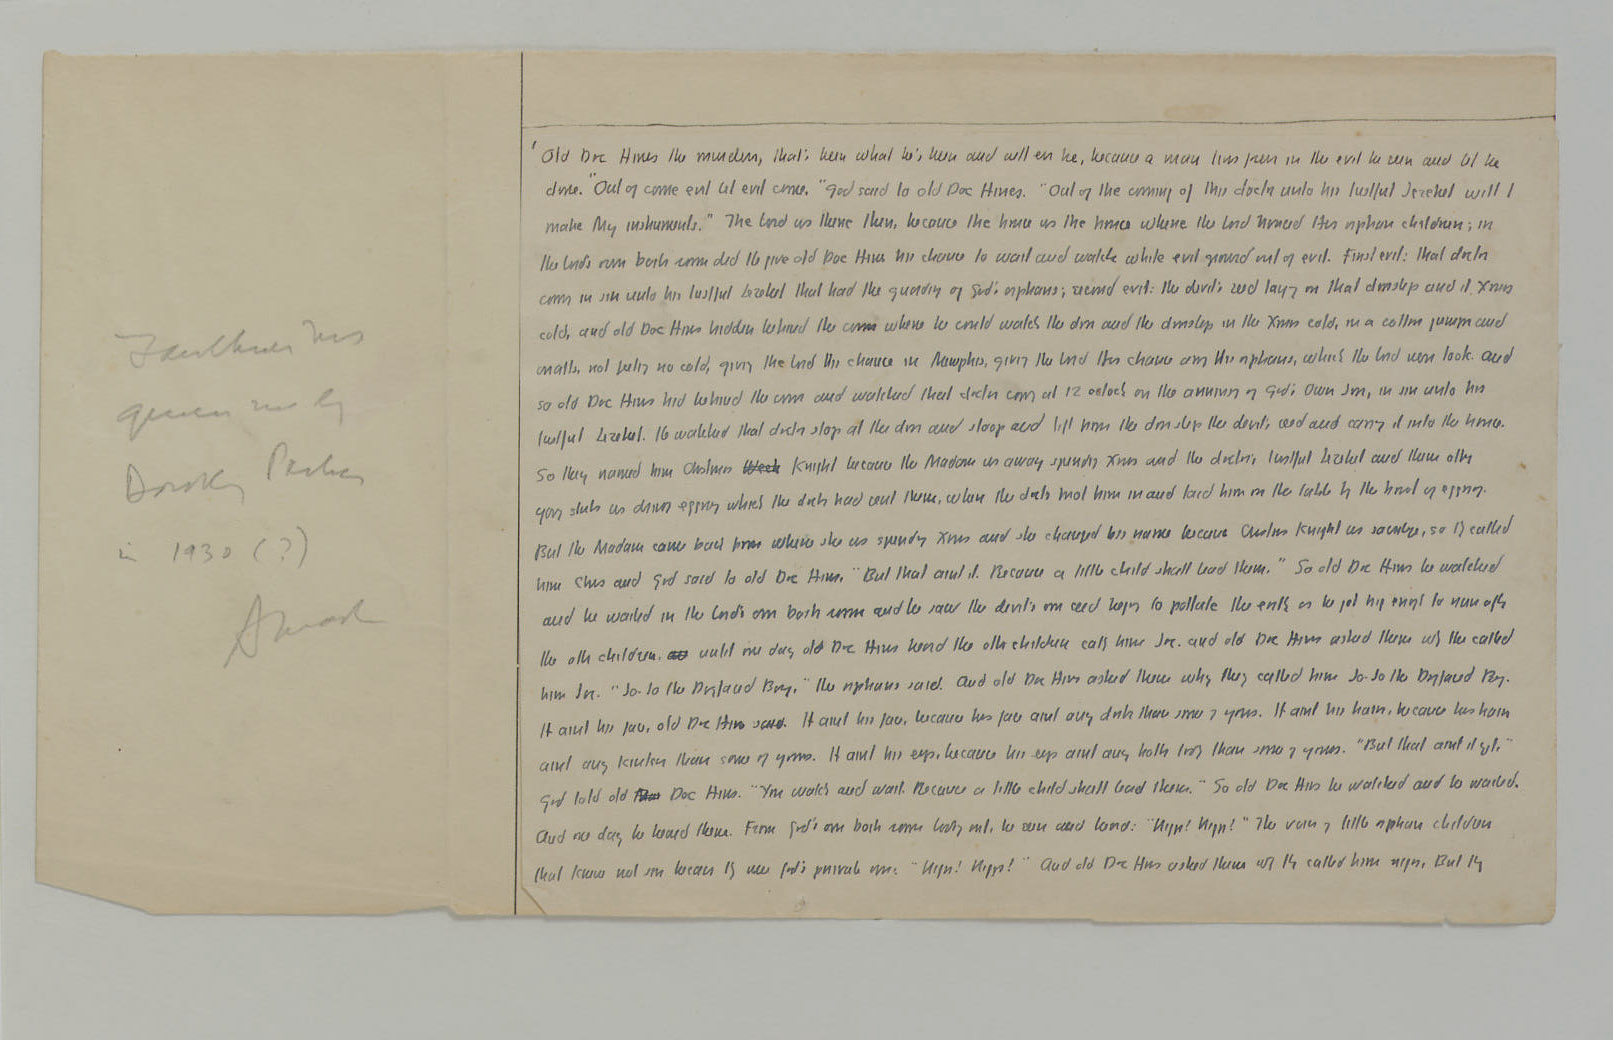 """FAULKNER, William. Autograph manuscript fragment for Light in August, 21 lines, approximately 400 words, three cancelled. 8vo (4 3/8 x 5¾in.), tipped to a larger sheet, with Archibald Macleish's pencil note: """"Faulkner ms given me by Dorothy Parker in 1930 (?) A Macleish."""" Quarter morocco slipcase."""